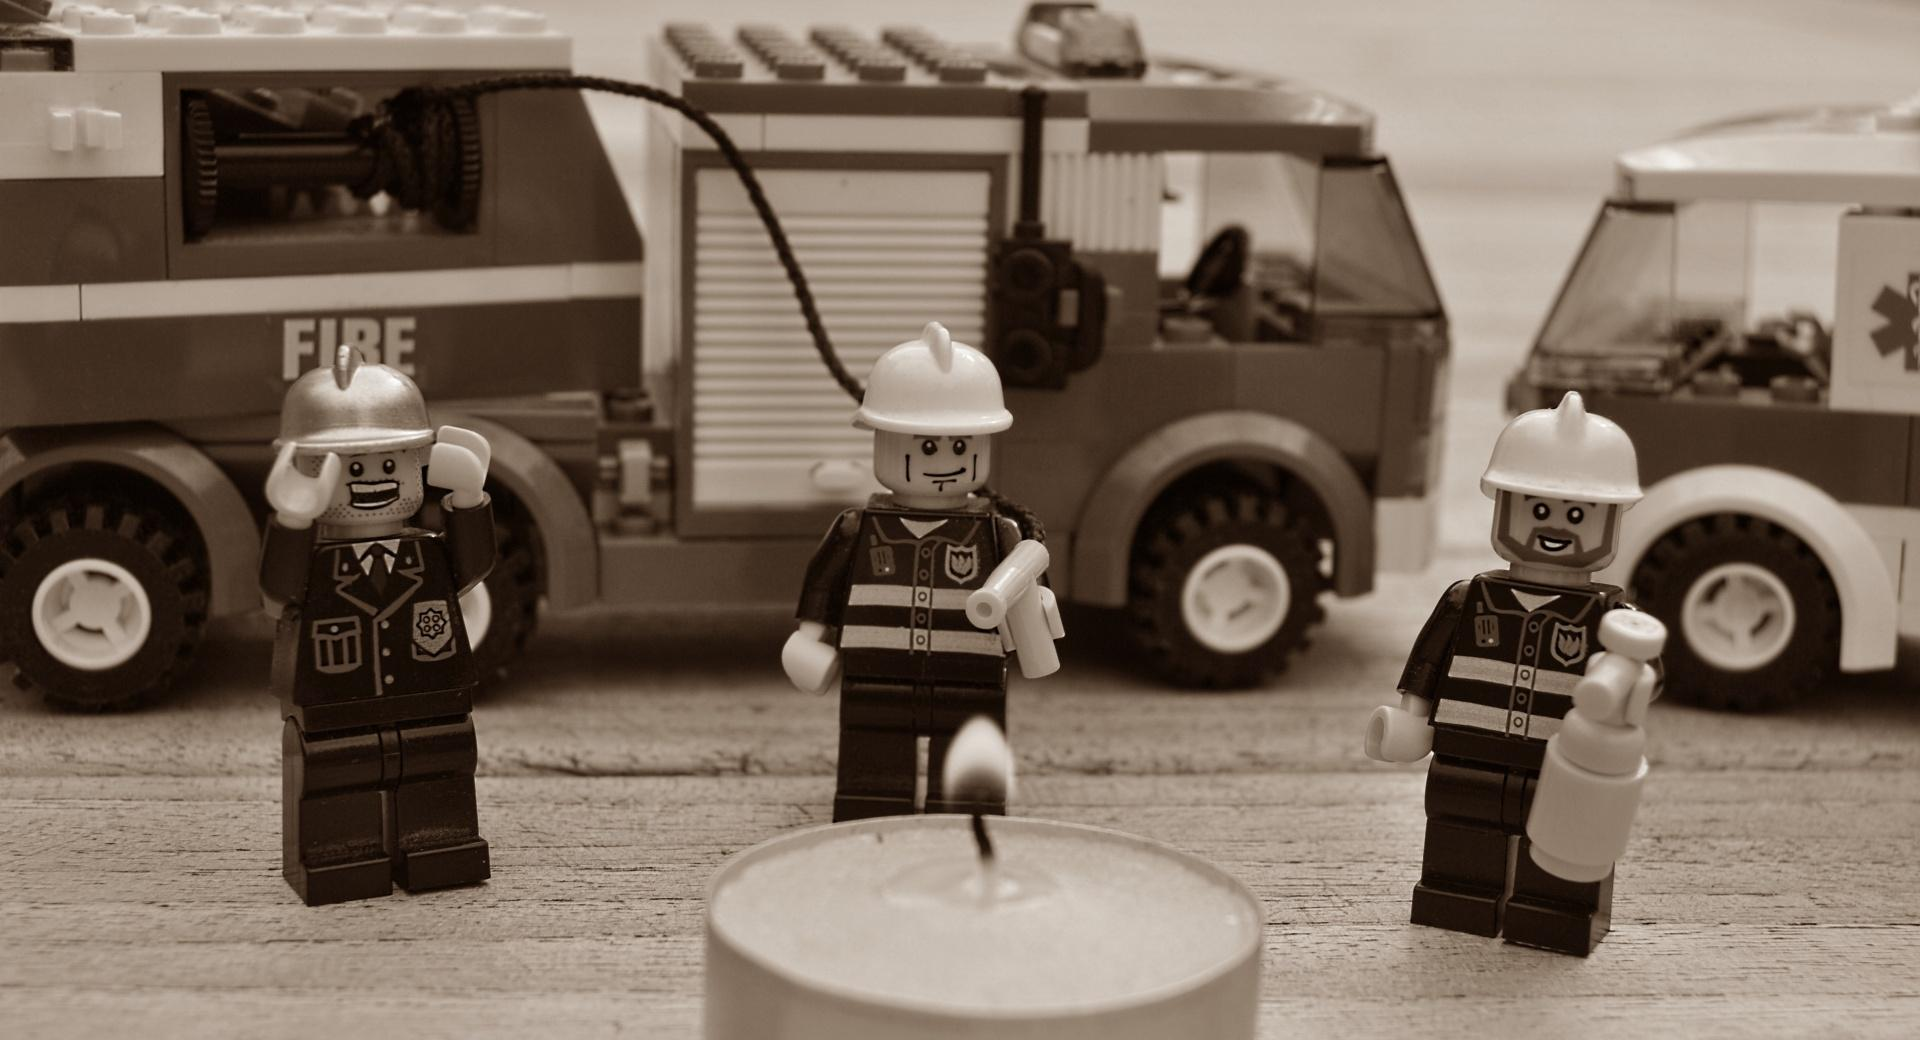 Always Trust The Lego Firemen wallpapers HD quality